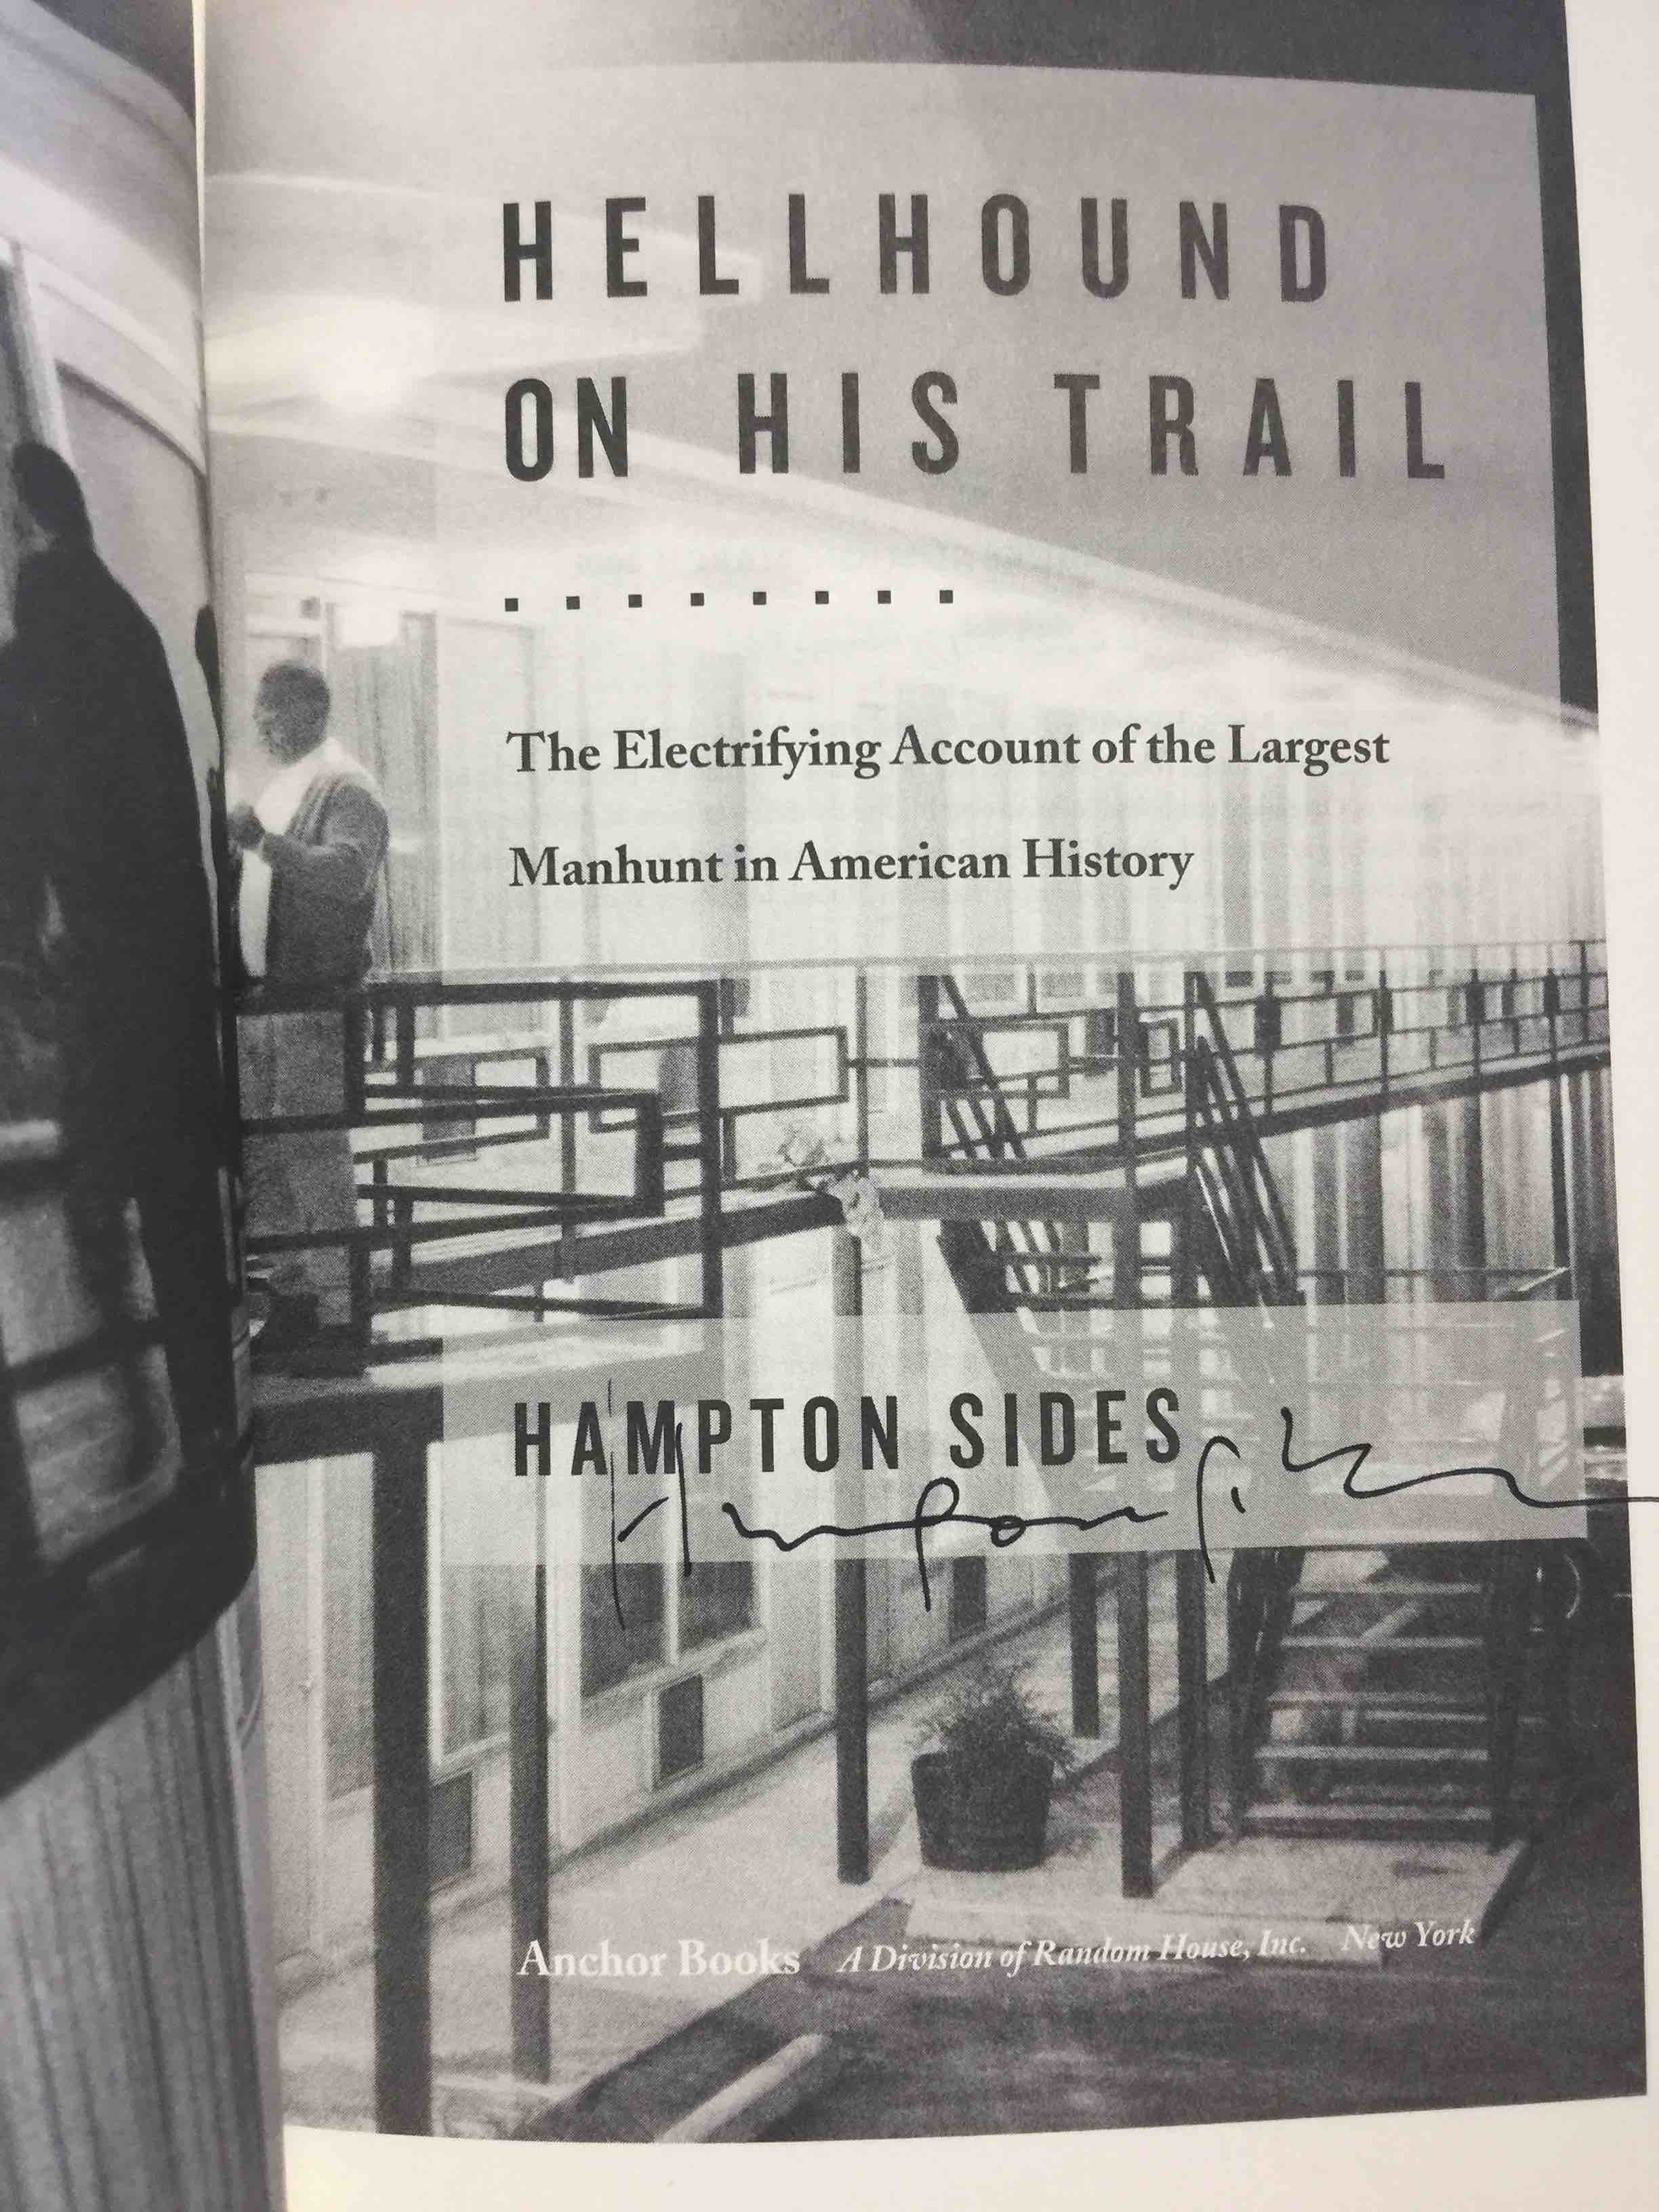 SIDES, HAMPTON. - HELLHOUND ON HIS TRAIL: The Electrifying Account of the Largest Manhunt in American History.